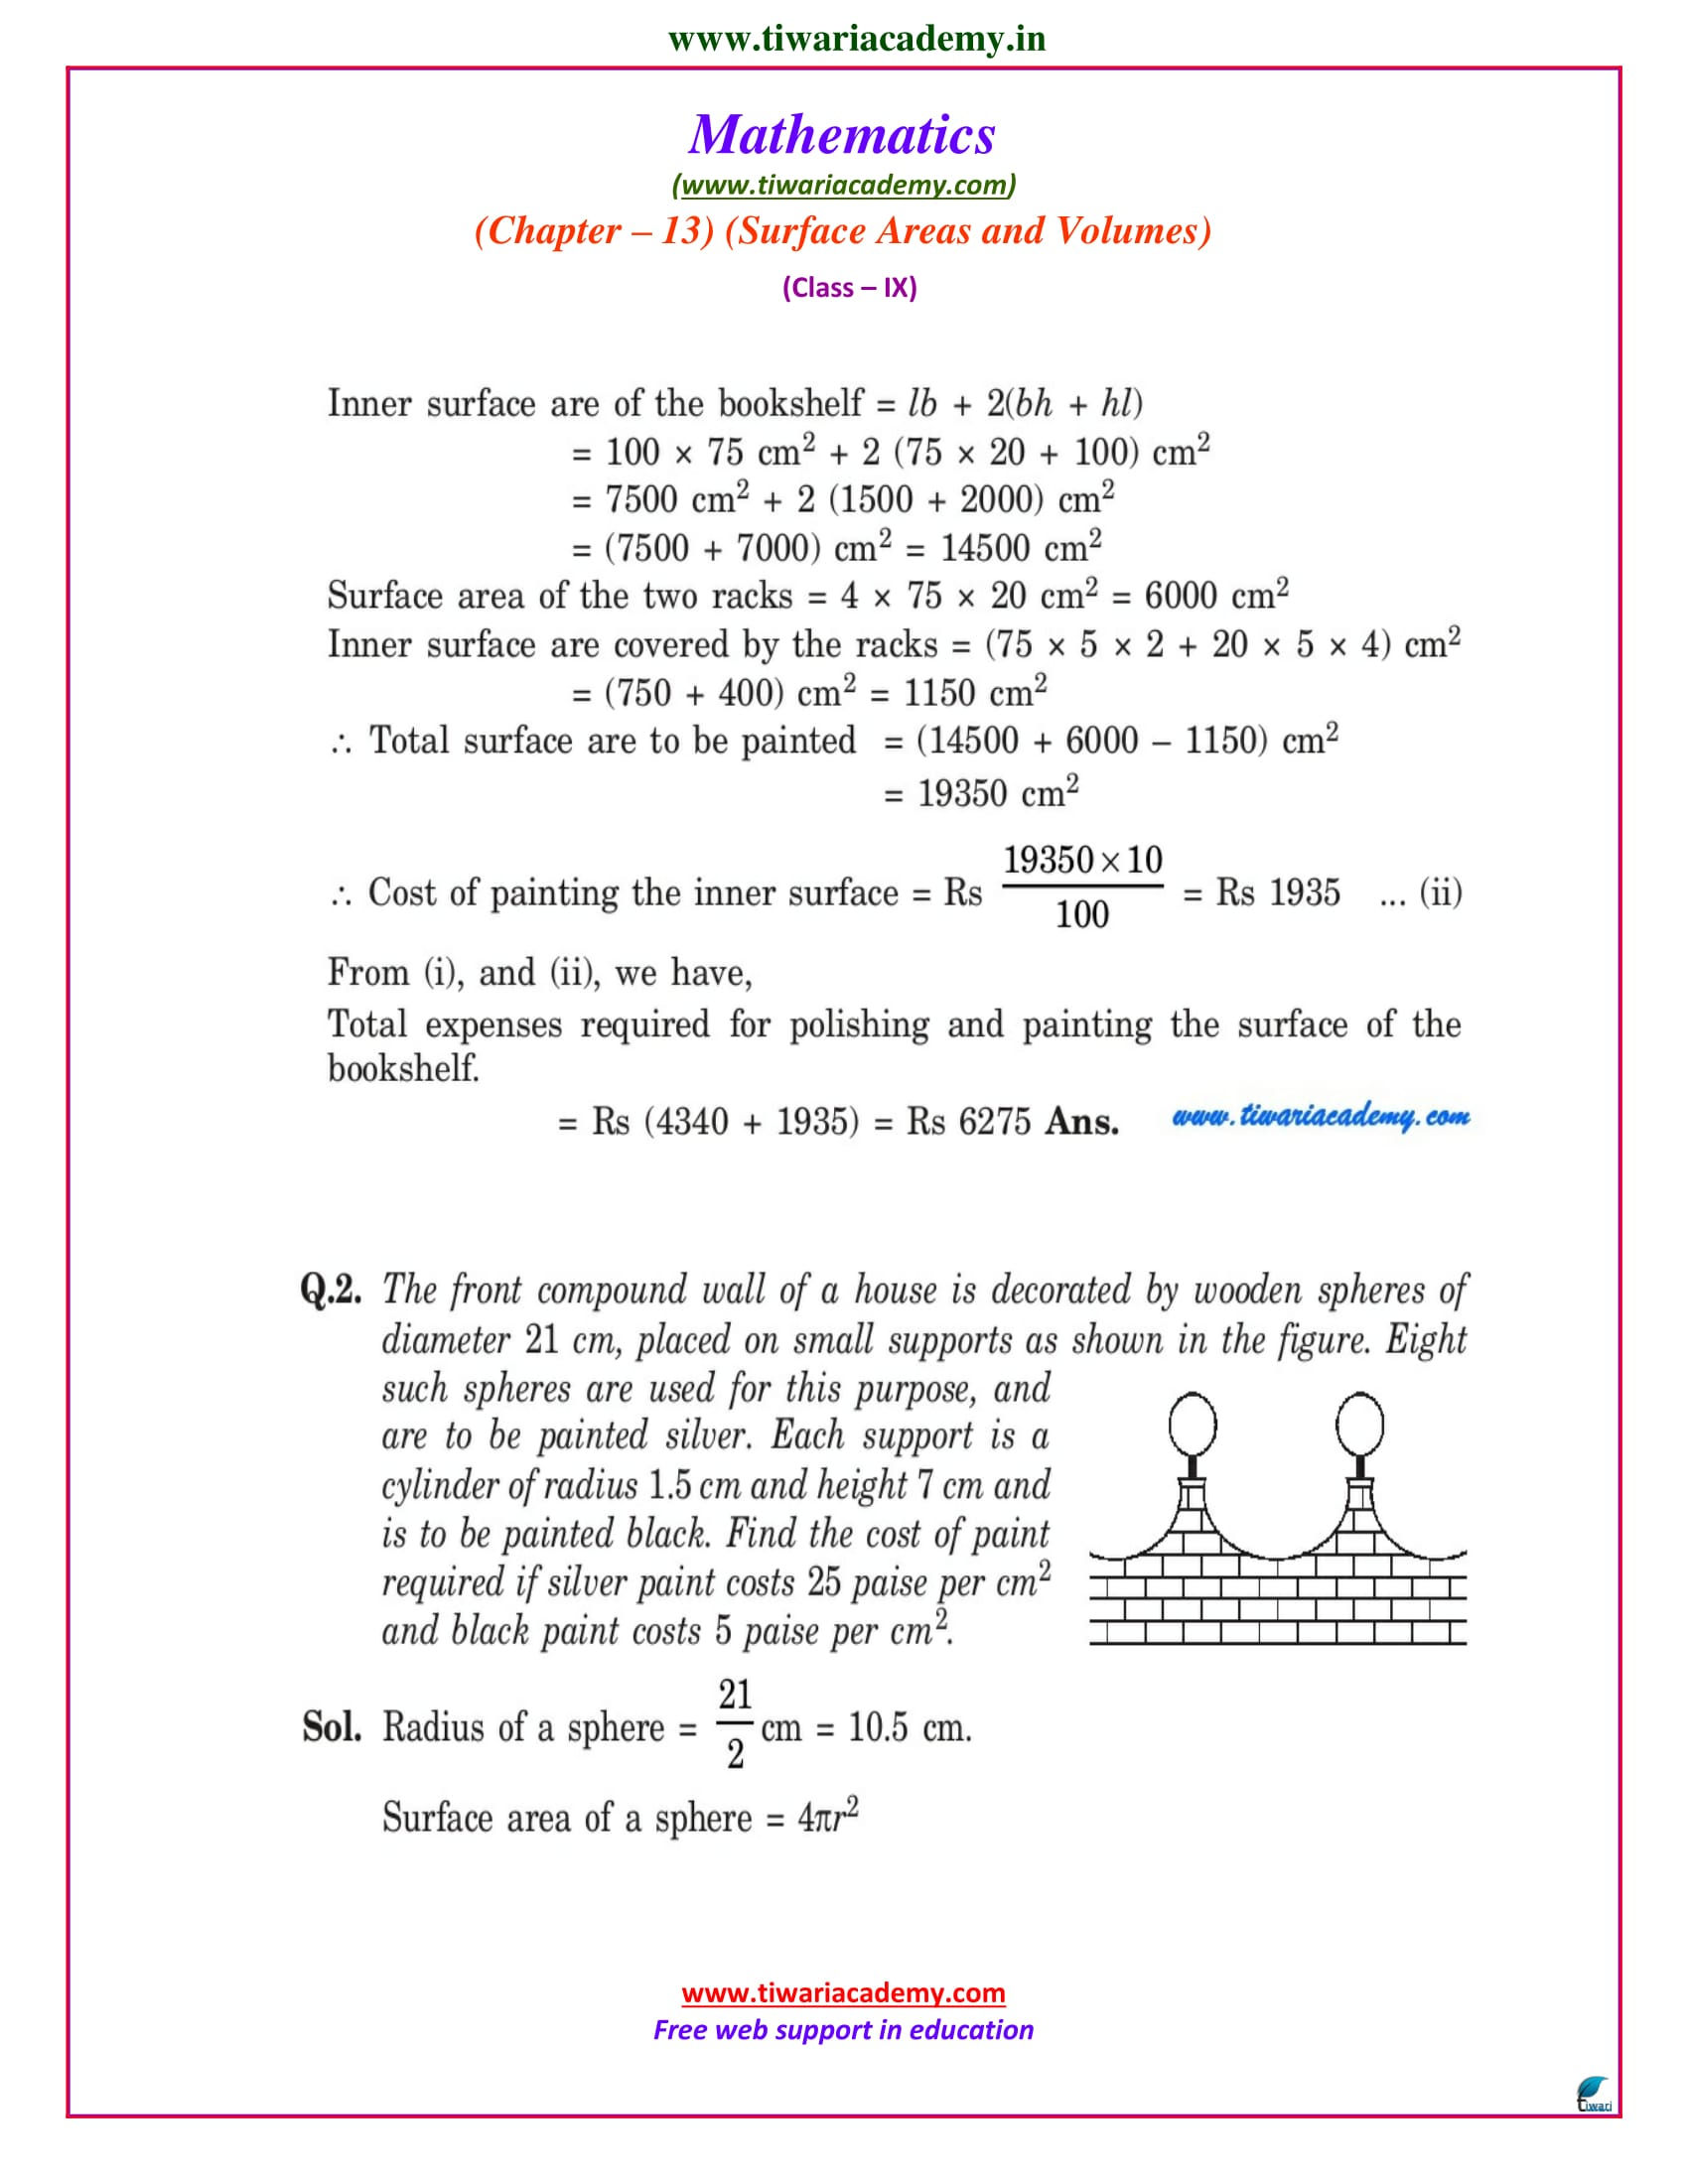 NCERT Solutions for Class 9 Maths Chapter 13 Exercise 13.9